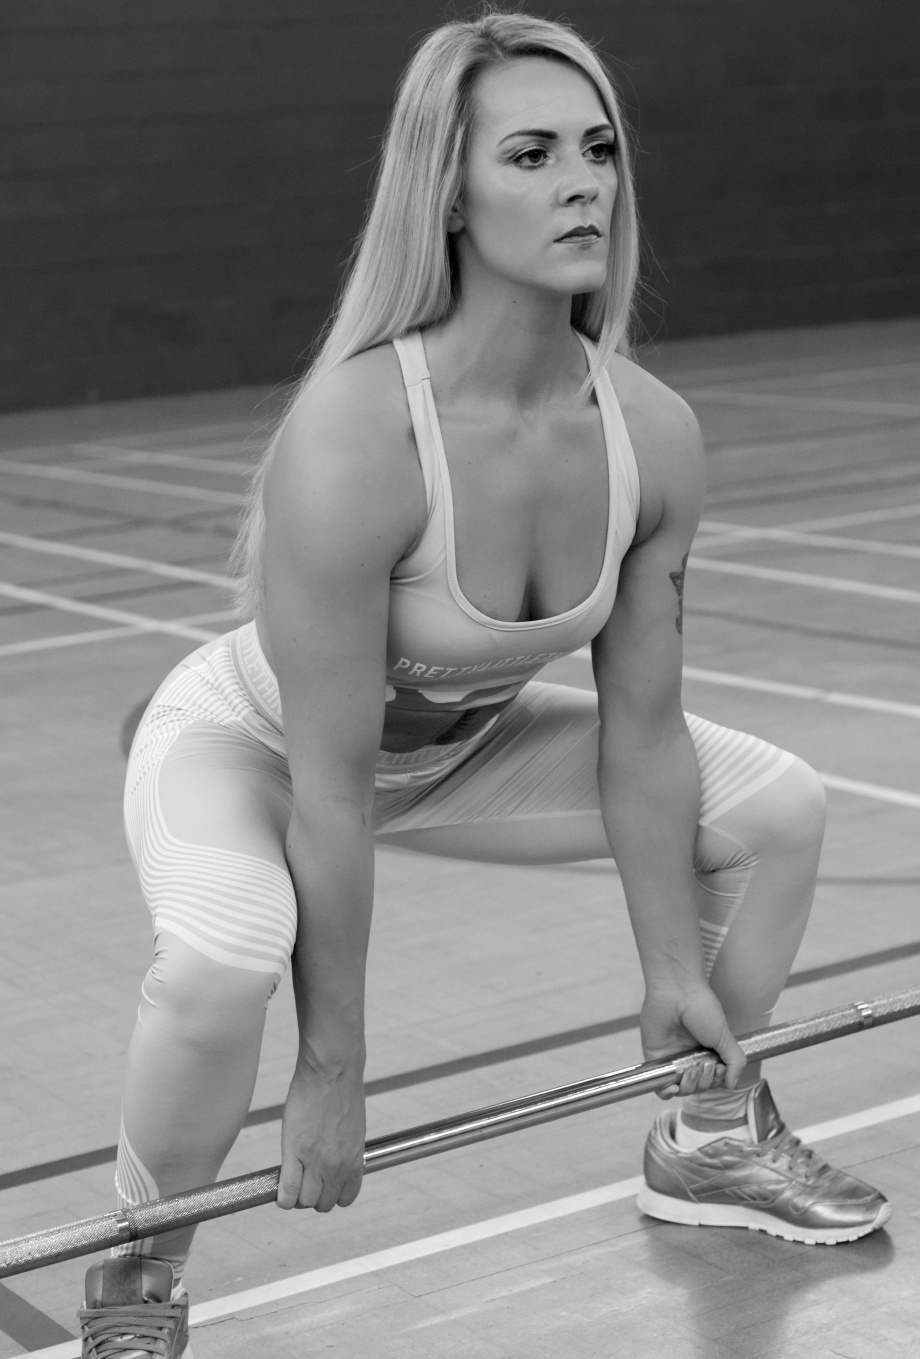 fitness, photoshoot, gym, coach, trainer, mayfield, sports, glamour, black and white, weights